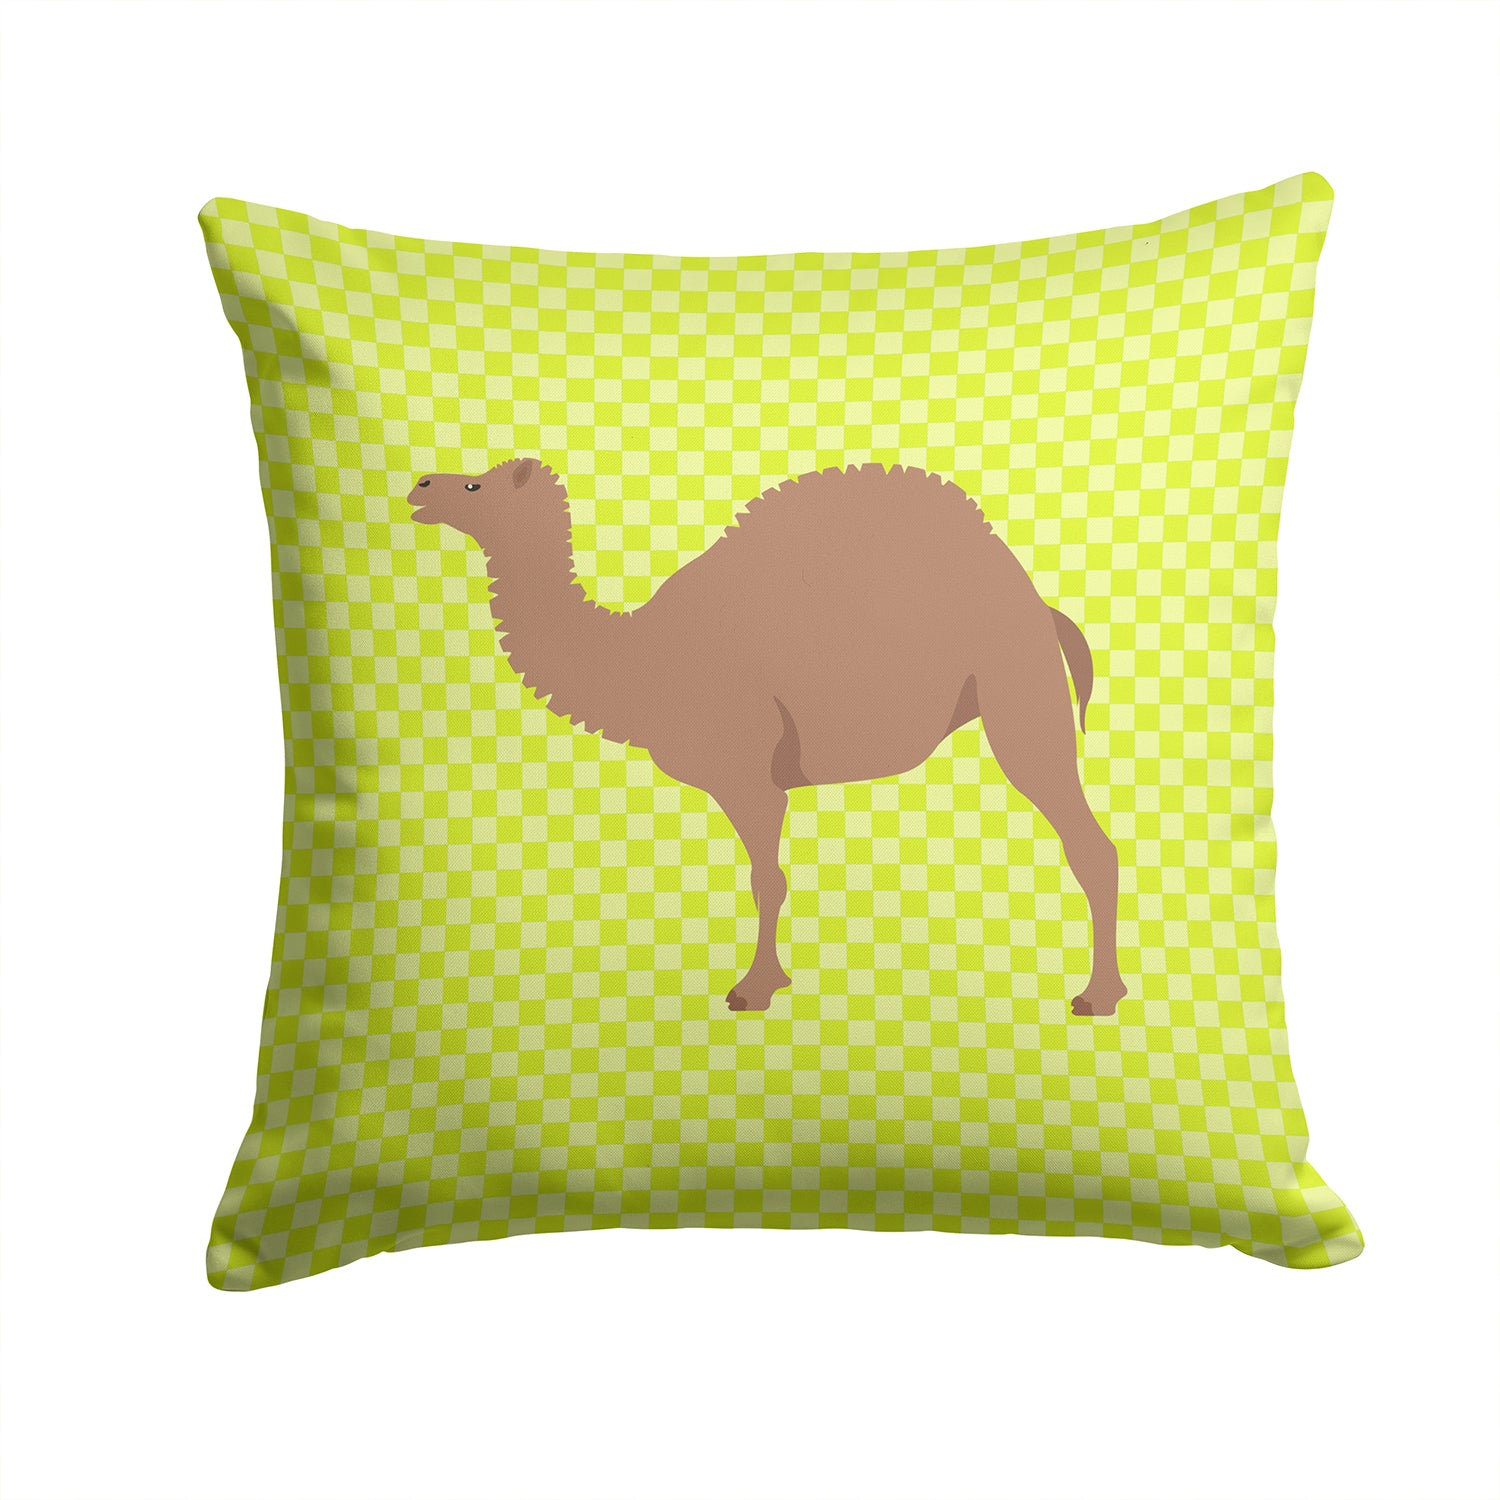 F1 Hybrid Camel Green Fabric Decorative Pillow BB7645PW1414 by Caroline's Treasures